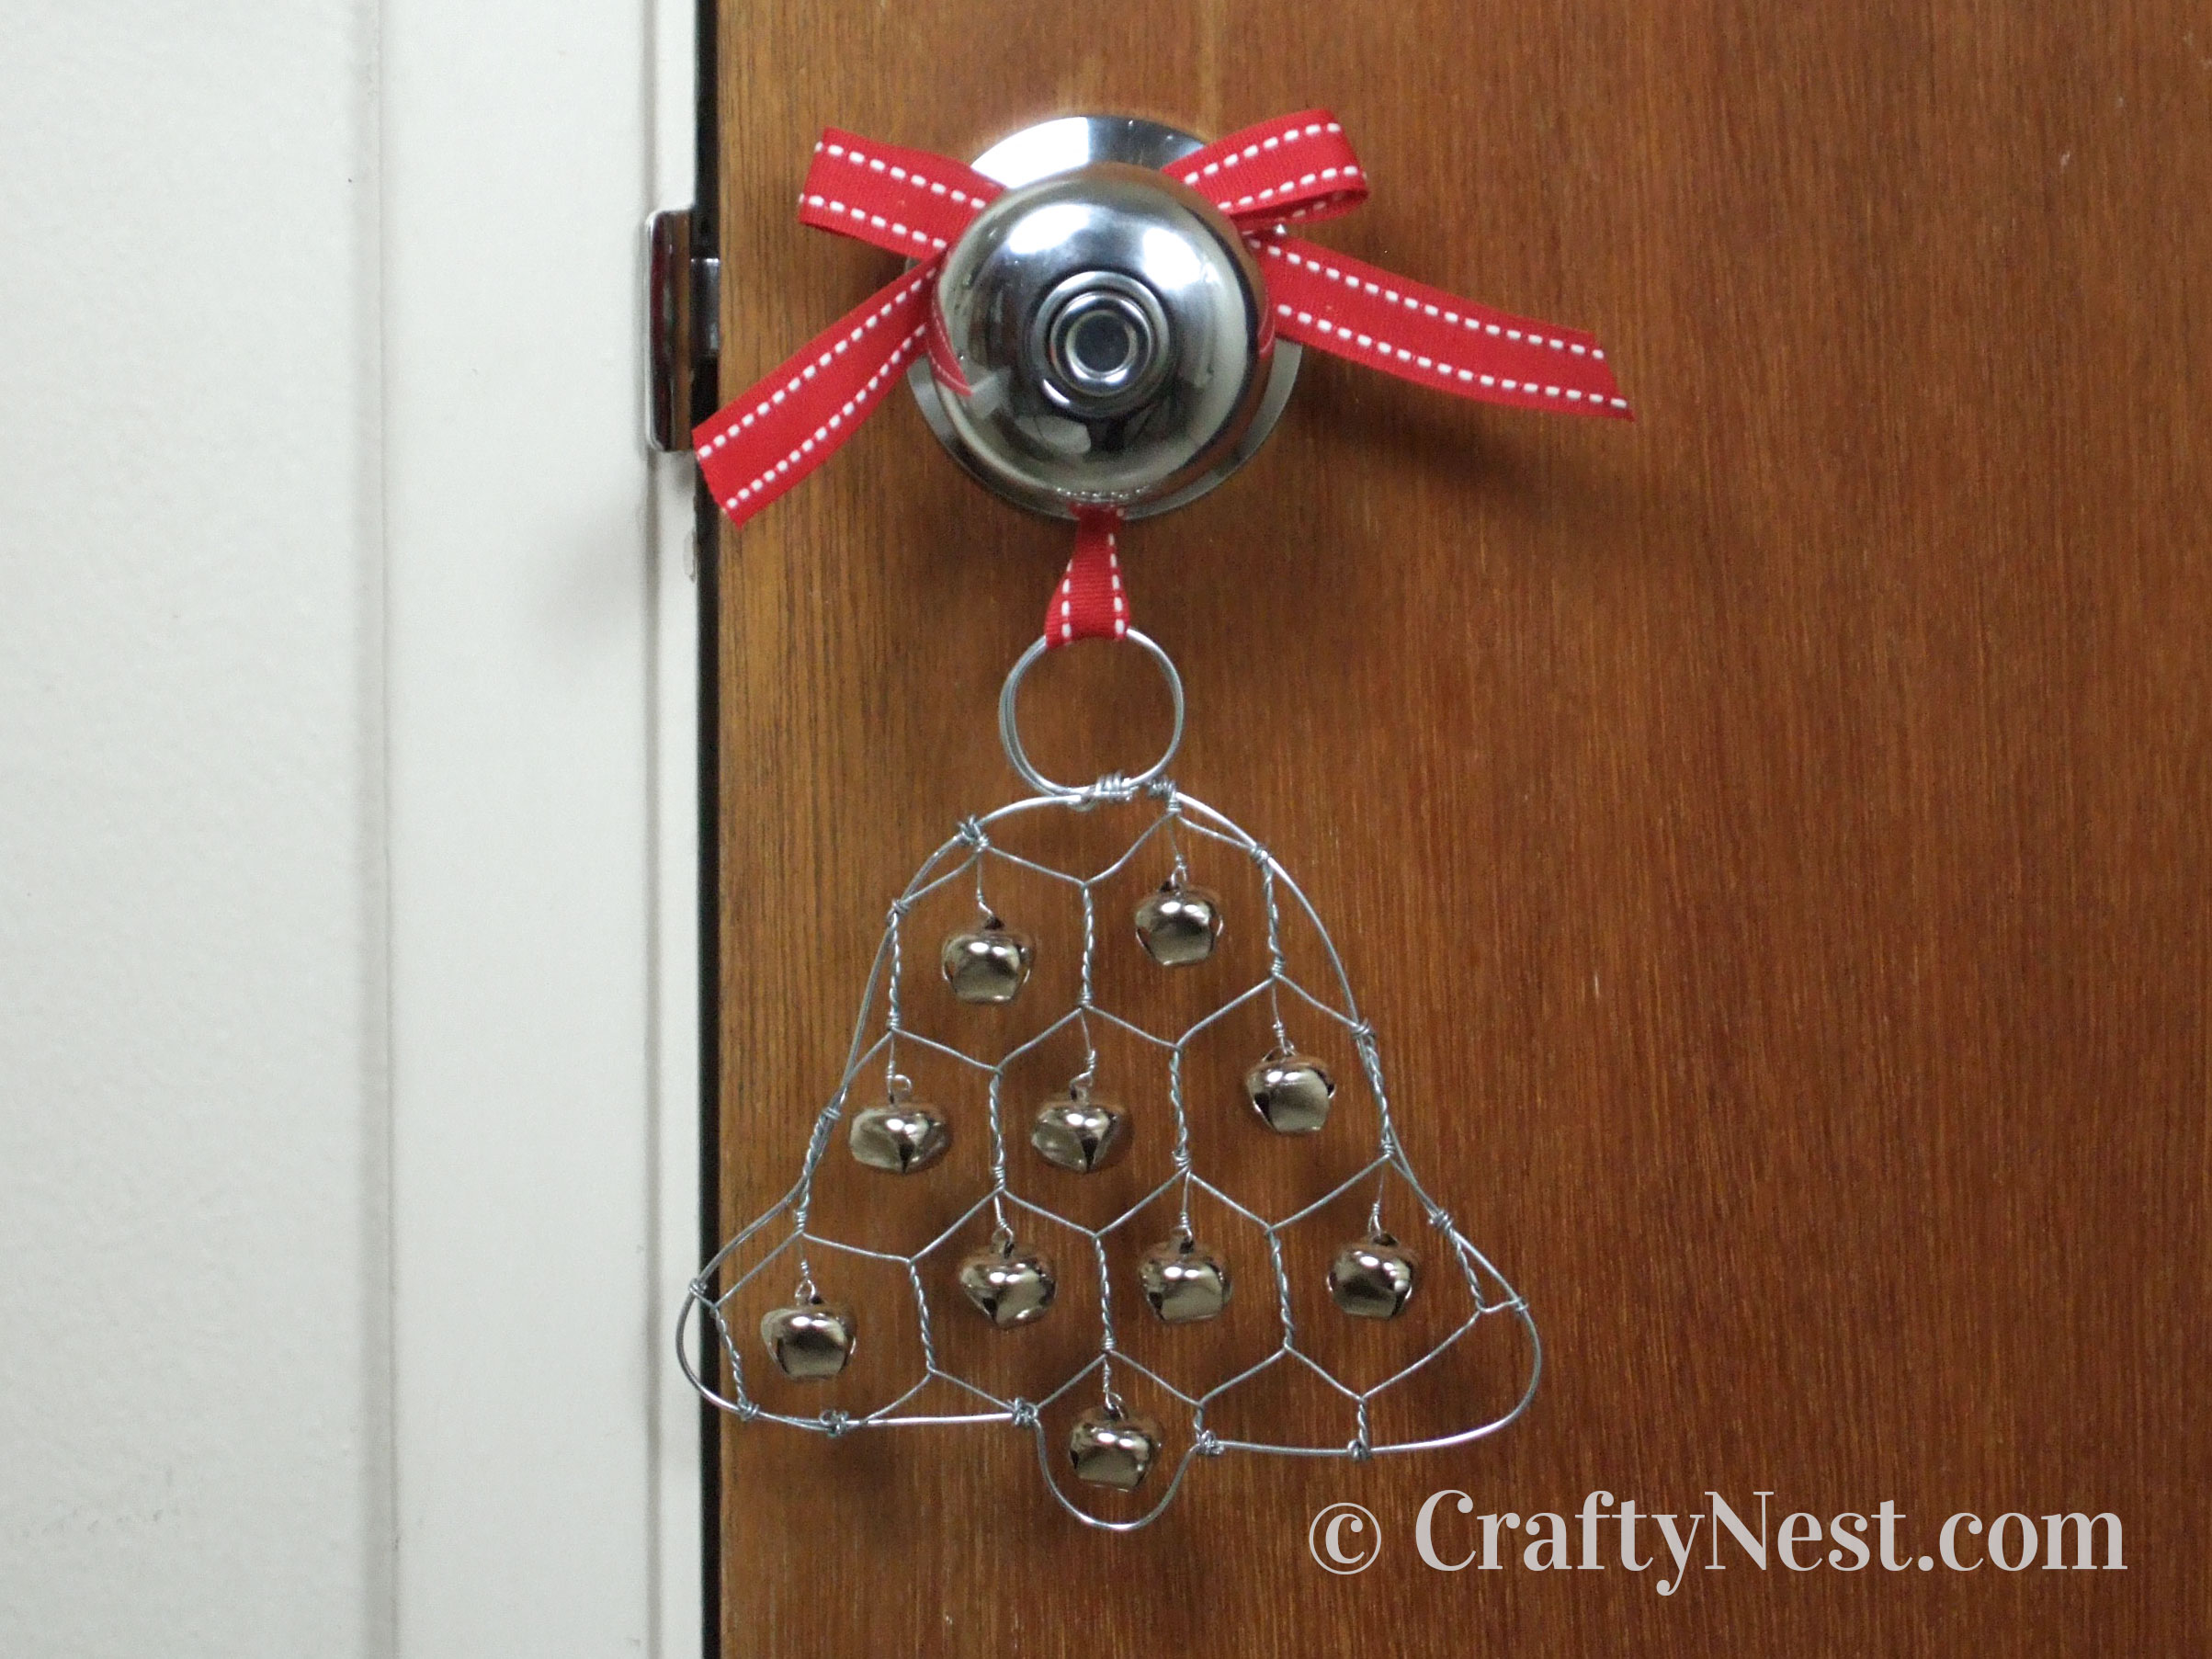 Jingle bell Christmas ornament made of wire, photo